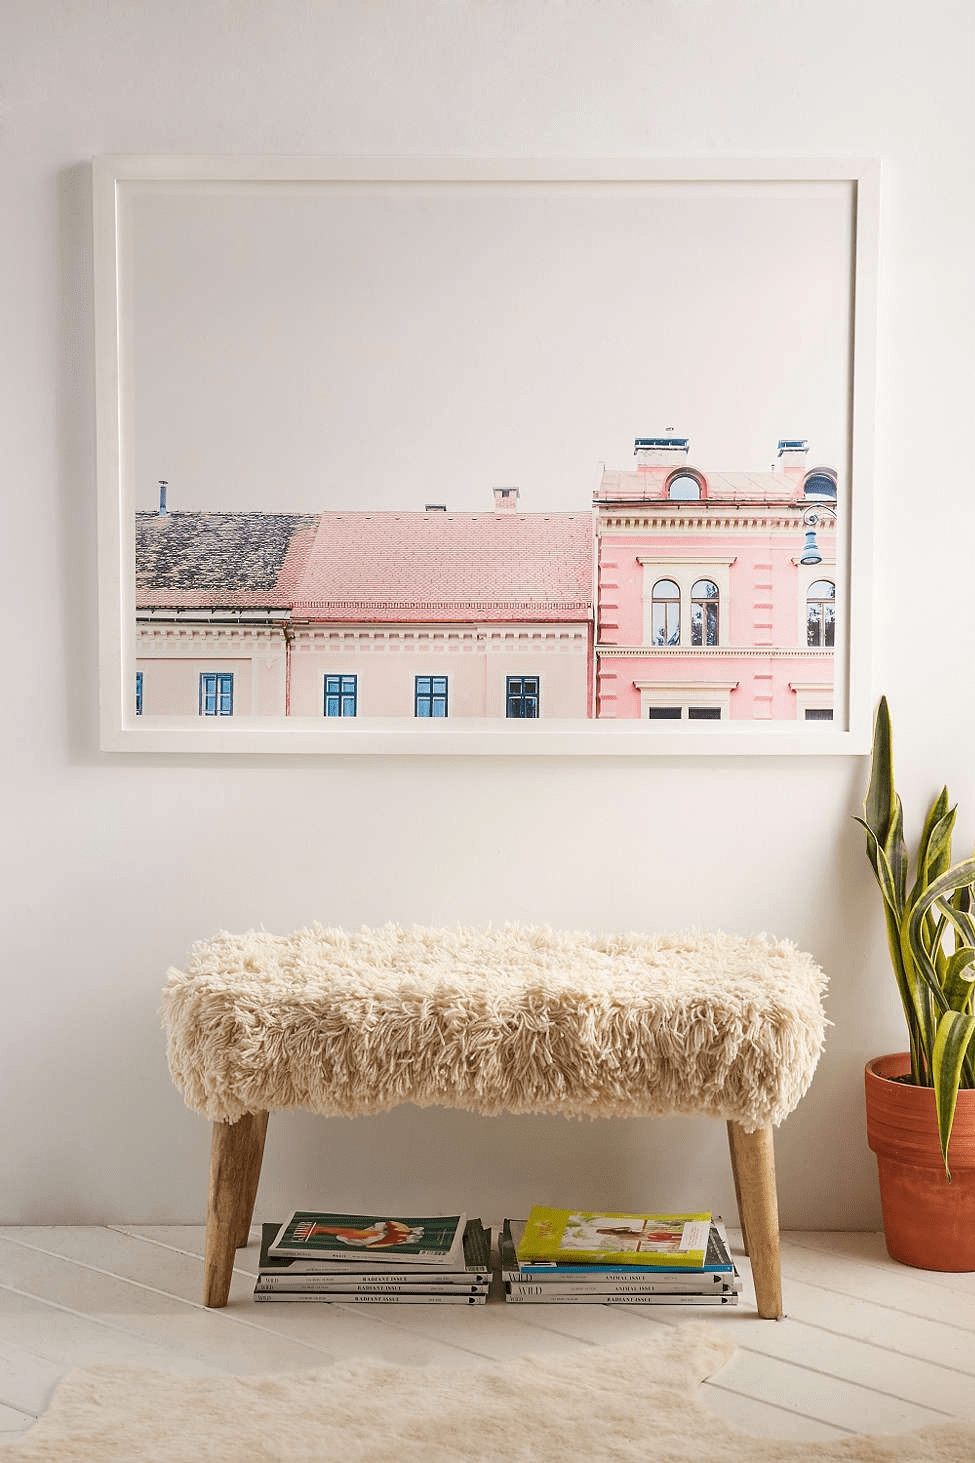 Wall Art From Urban Outfitters | Glitter Magazine With Newest Urban Outfitters Wall Art (View 19 of 20)